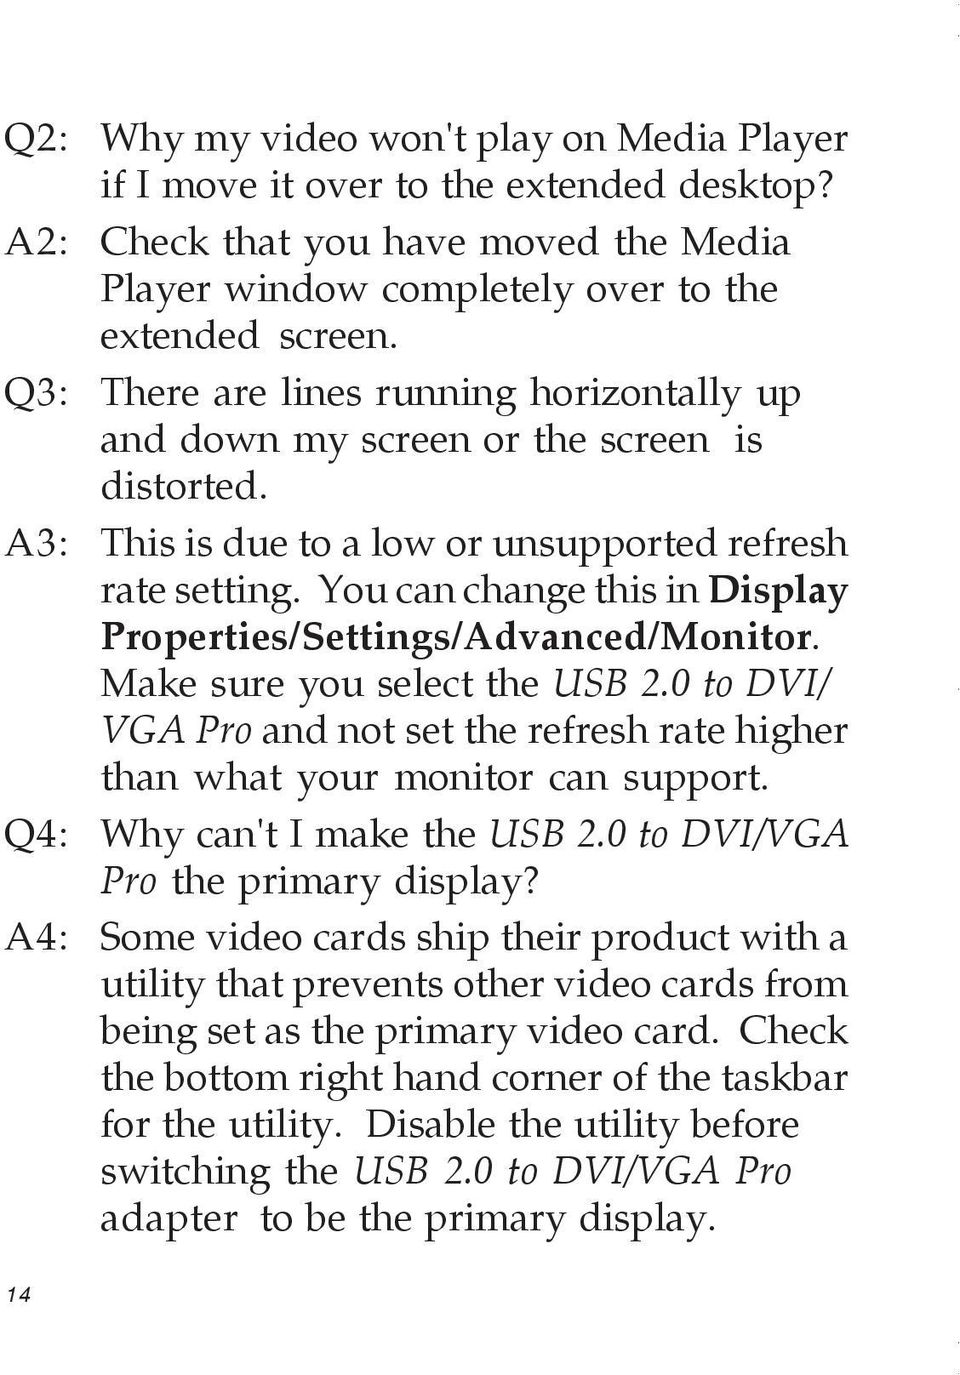 You can change this in Display Properties/Settings/Advanced/Monitor. Make sure you select the USB 2.0 to DVI/ VGA Pro and not set the refresh rate higher than what your monitor can support.